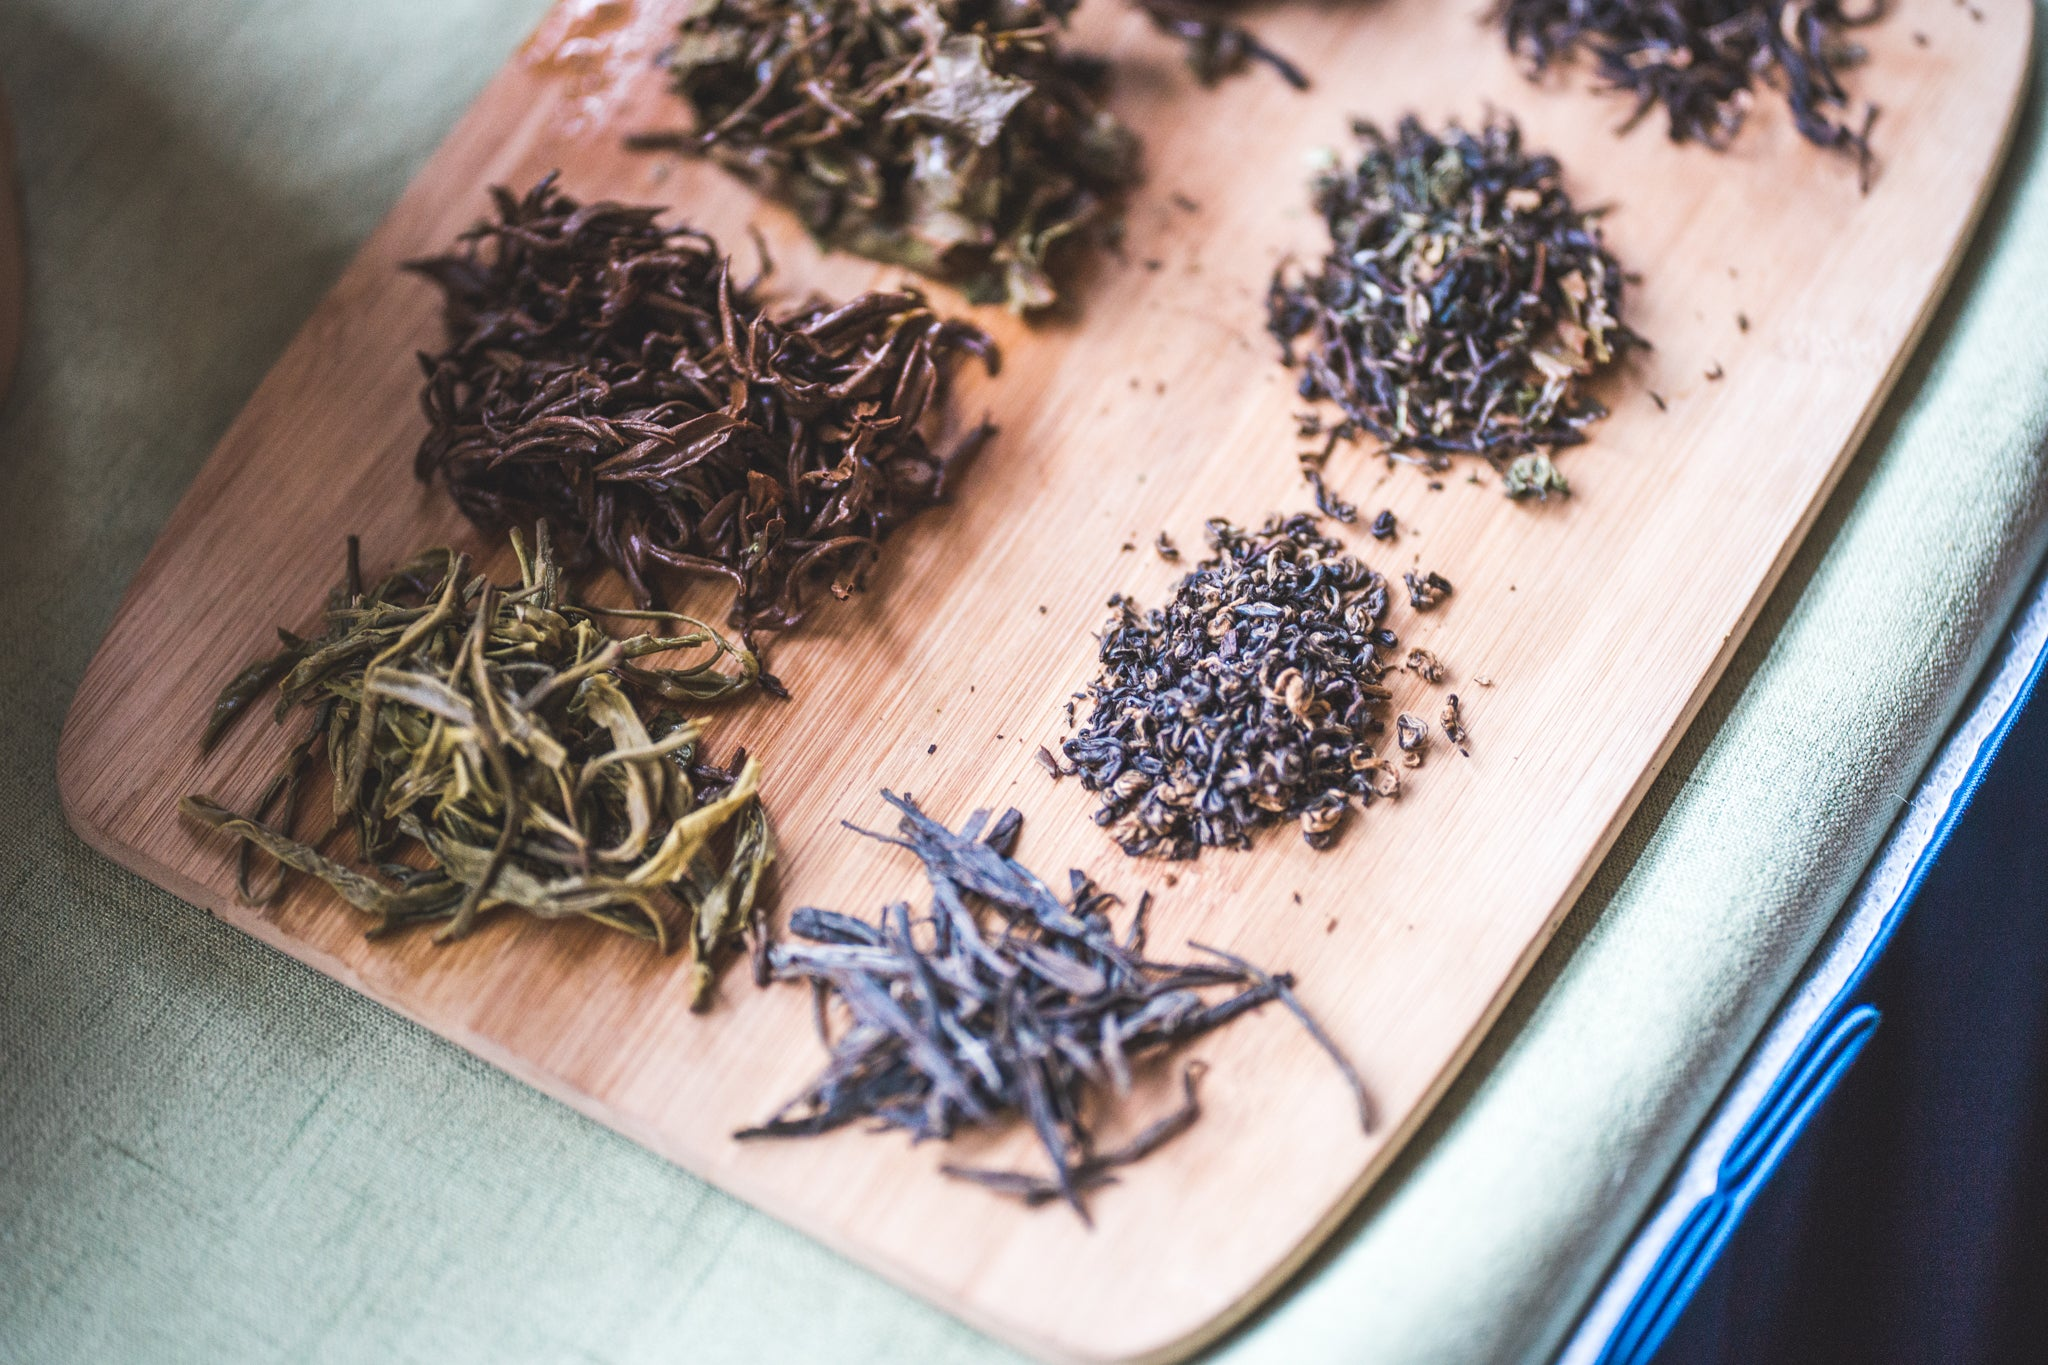 Loose leaf Indian and Nepali tea laid out on a cutting board. Wet and dry leaf.